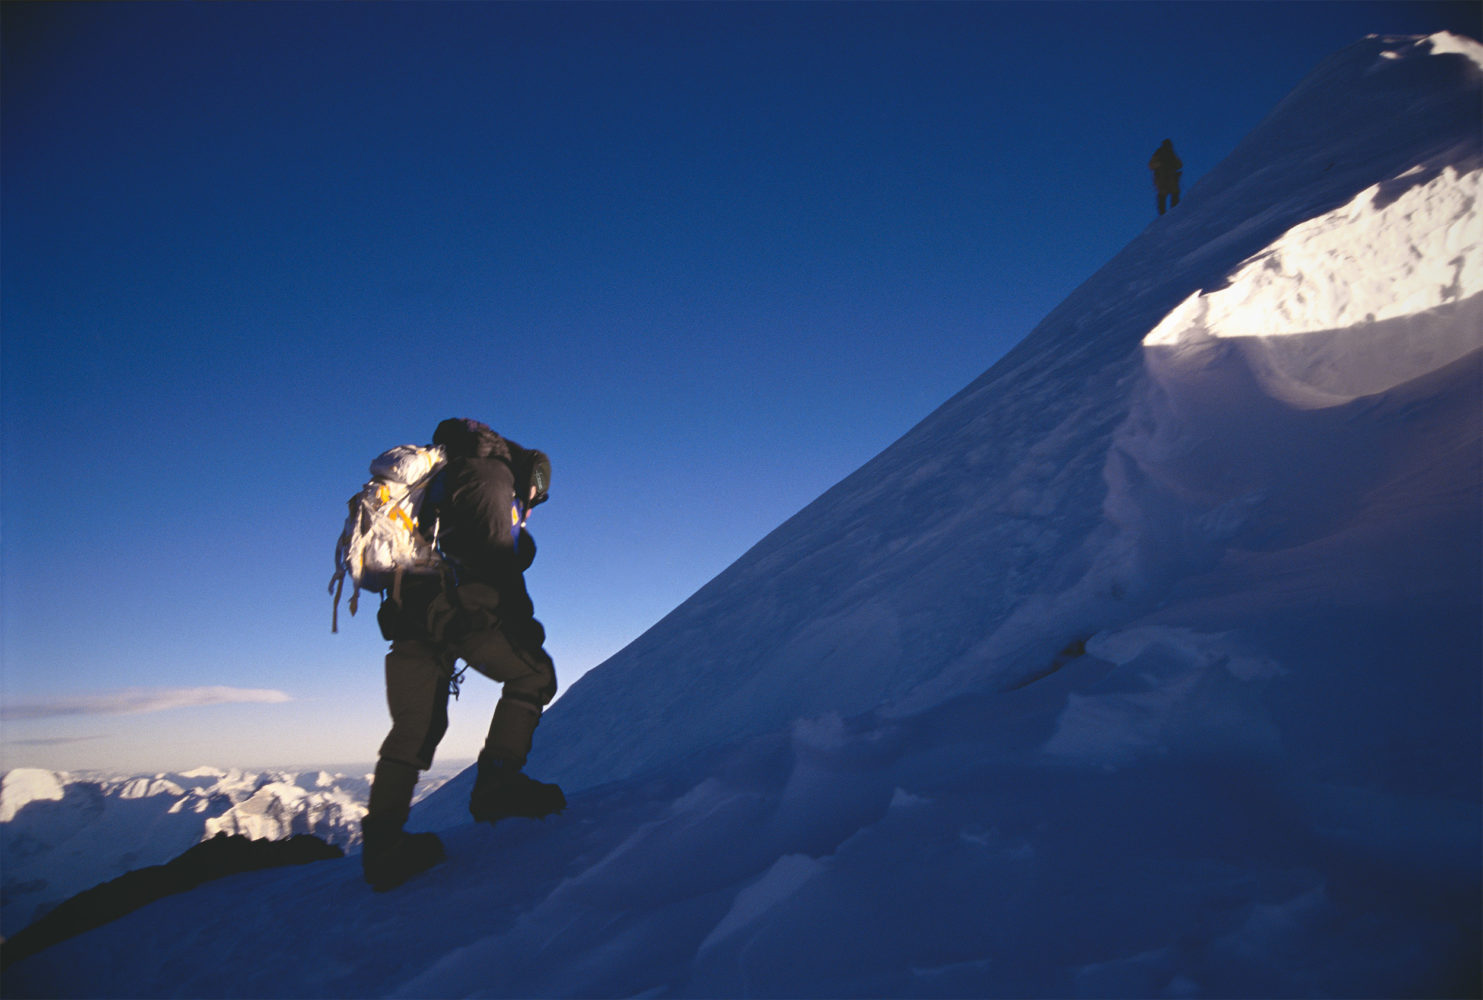 On Top of the World: Apa Sherpa